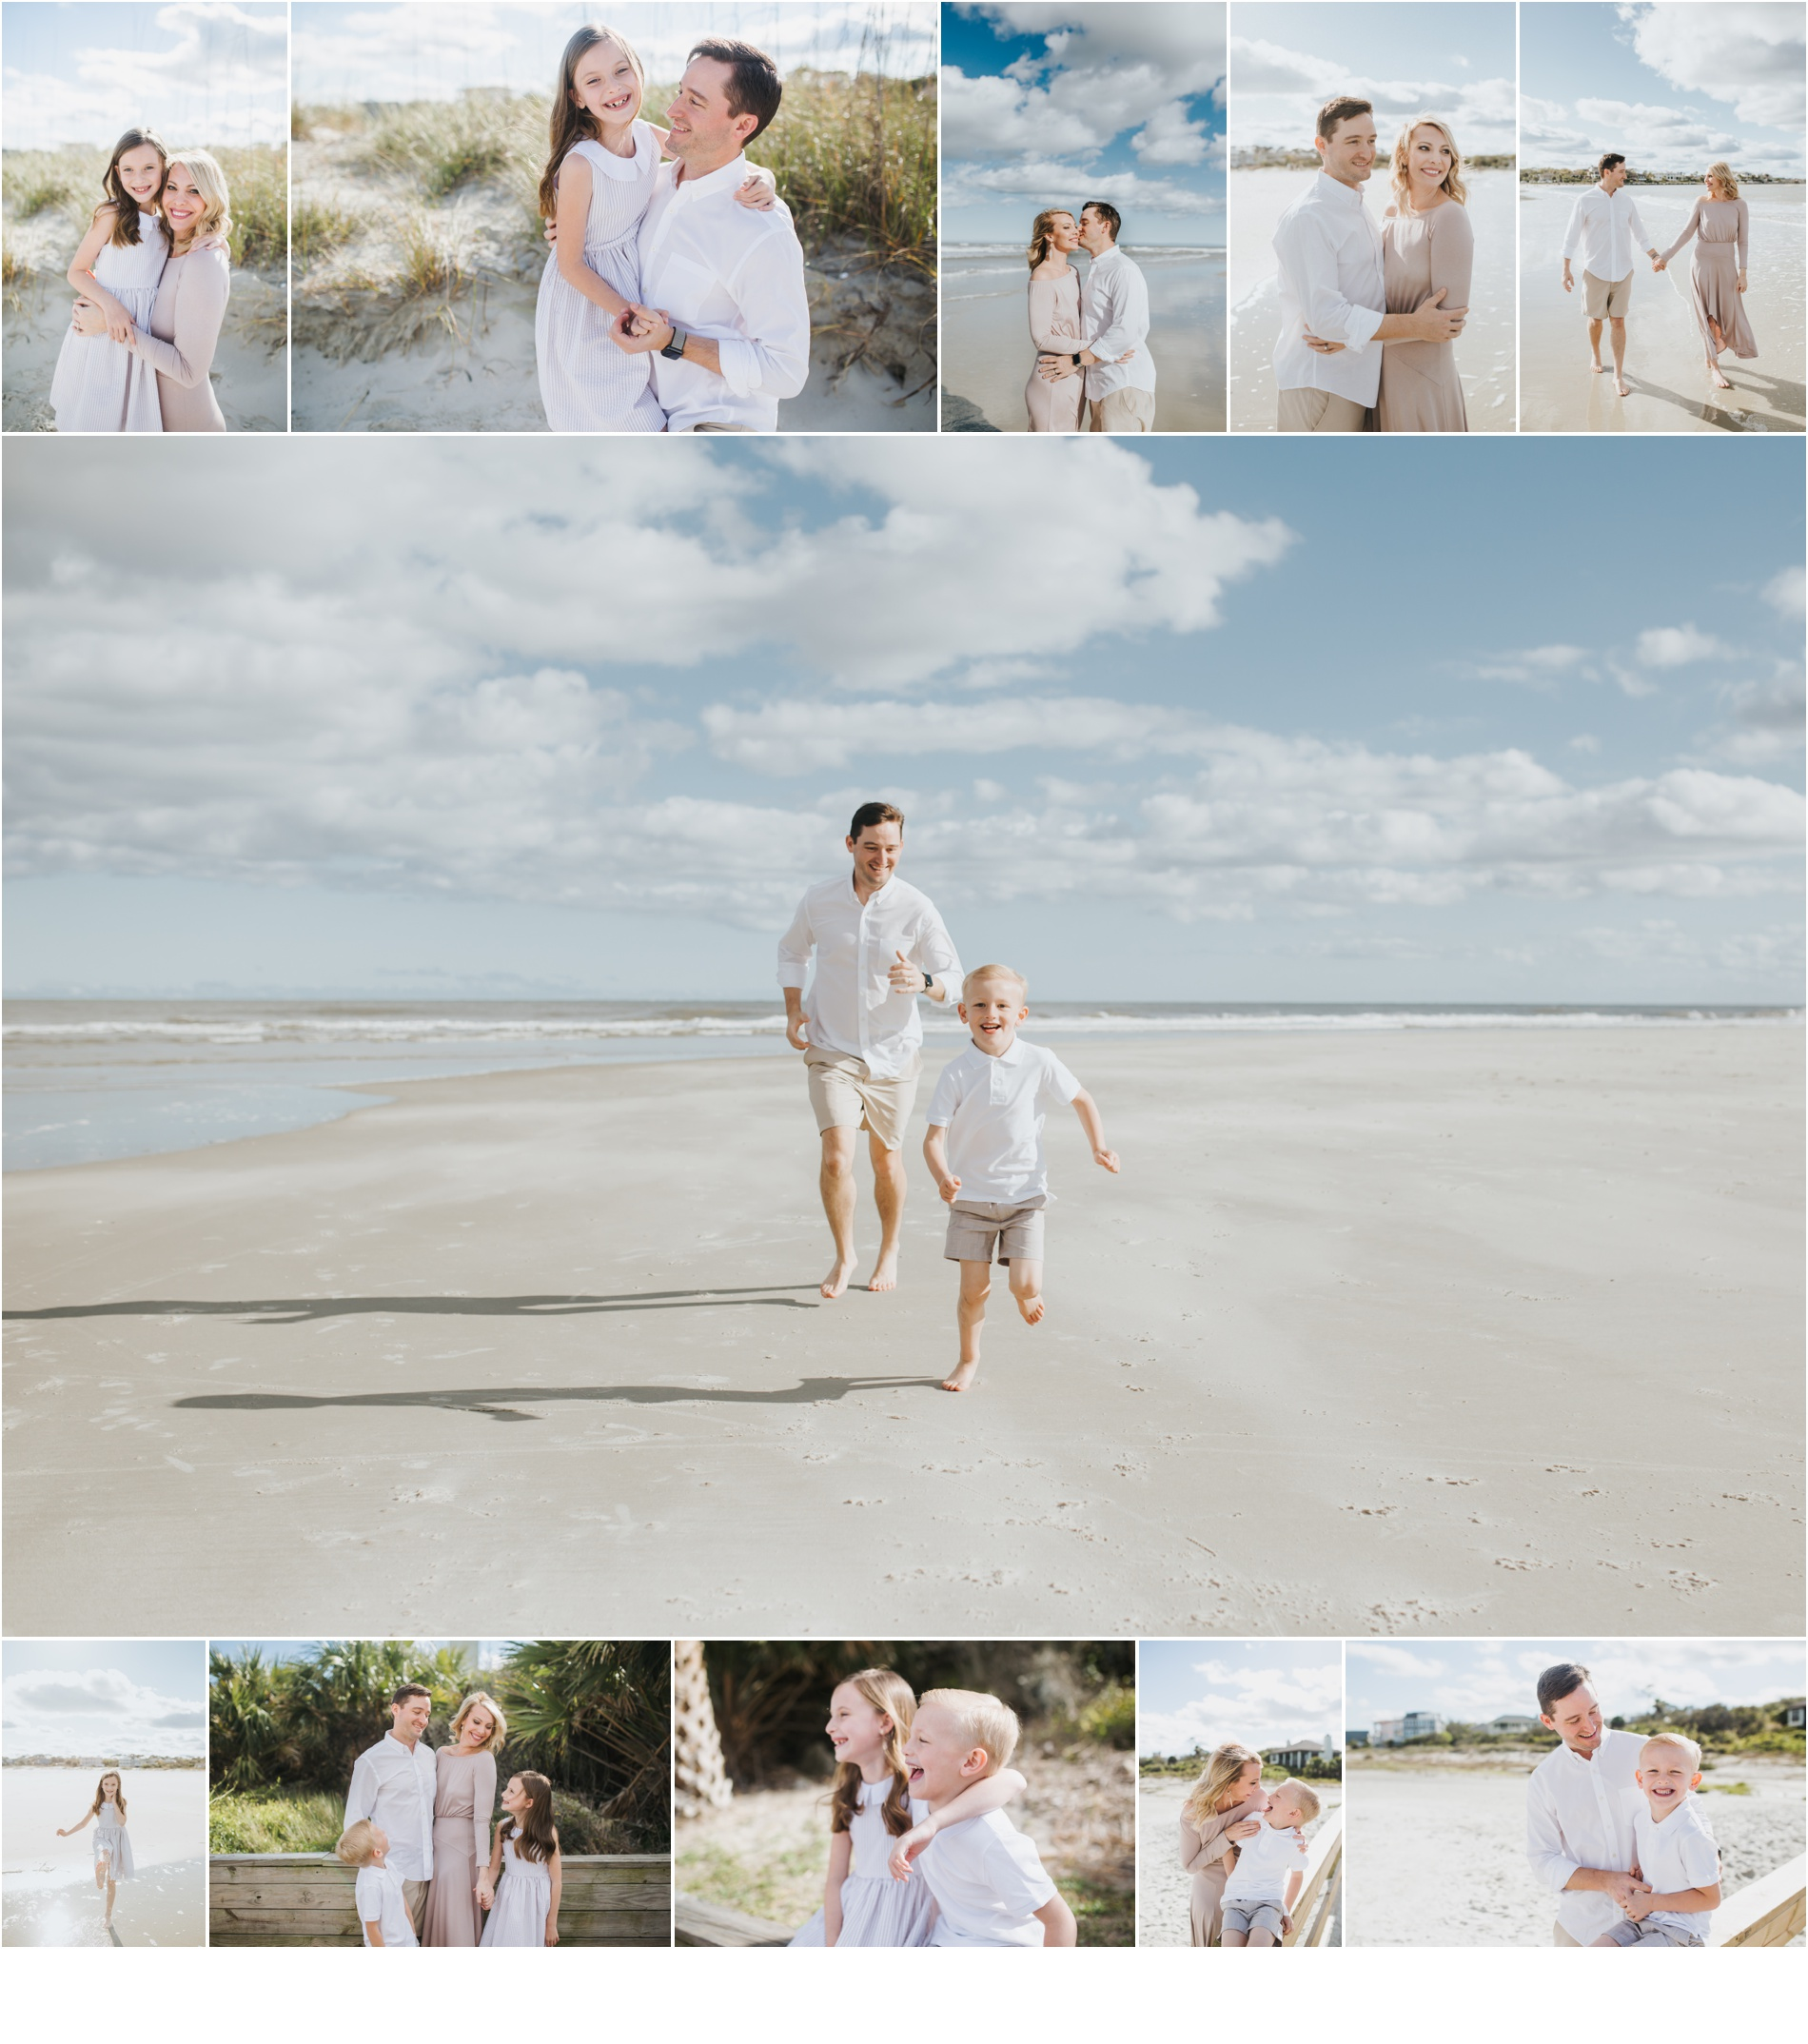 Rainey_Gregg_Photography_St._Simons_Island_Georgia_California_Wedding_Portrait_Photography_1767.jpg